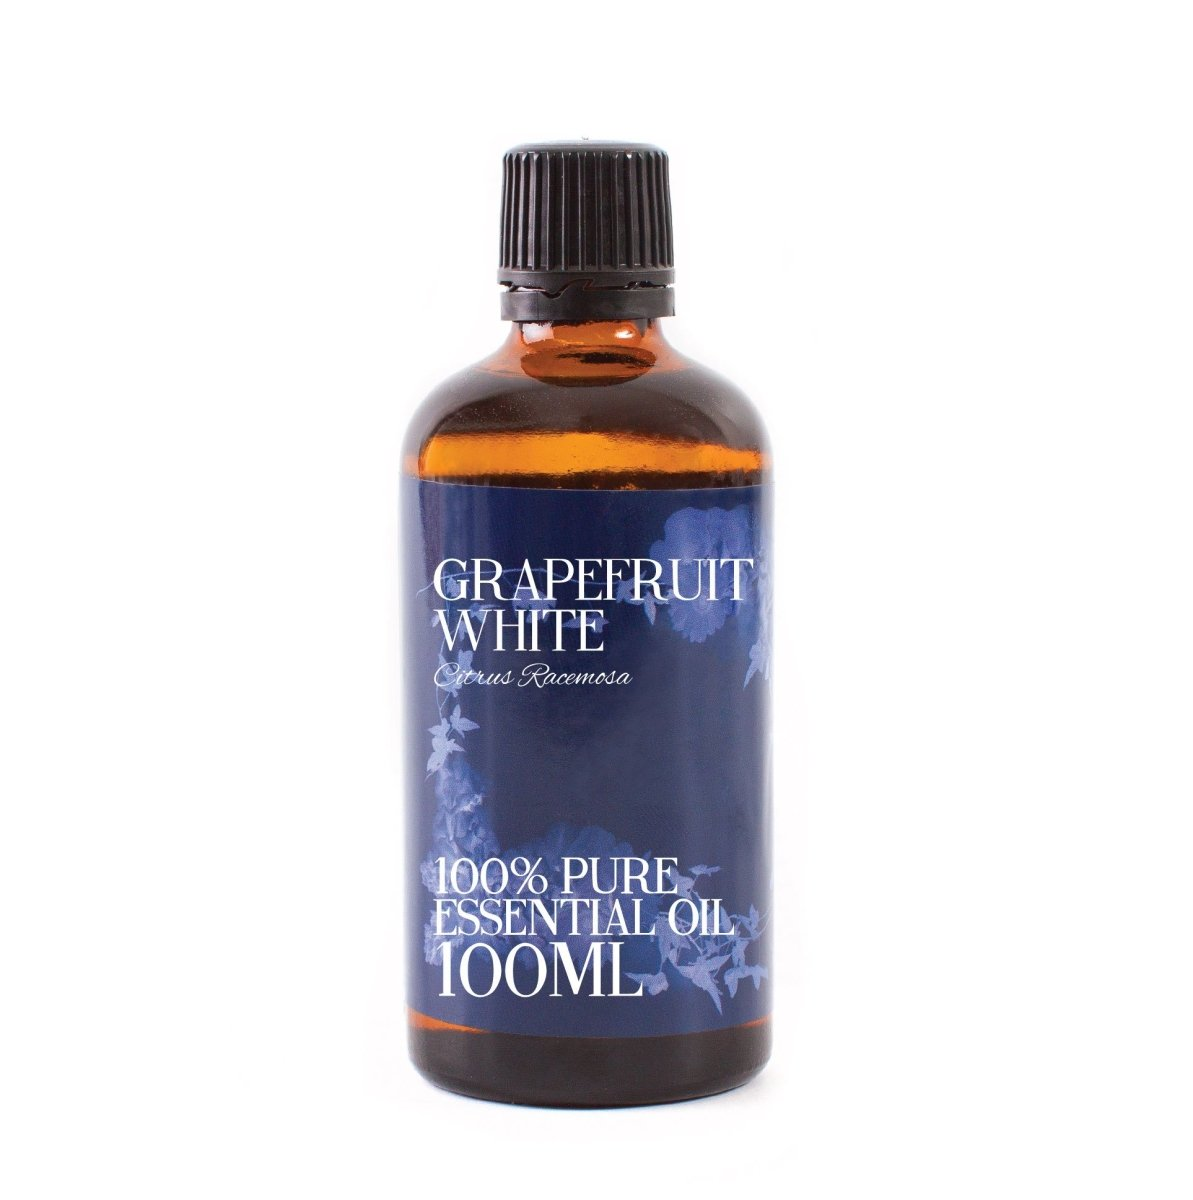 Grapefruit White Essential Oil - Mystic Moments UK